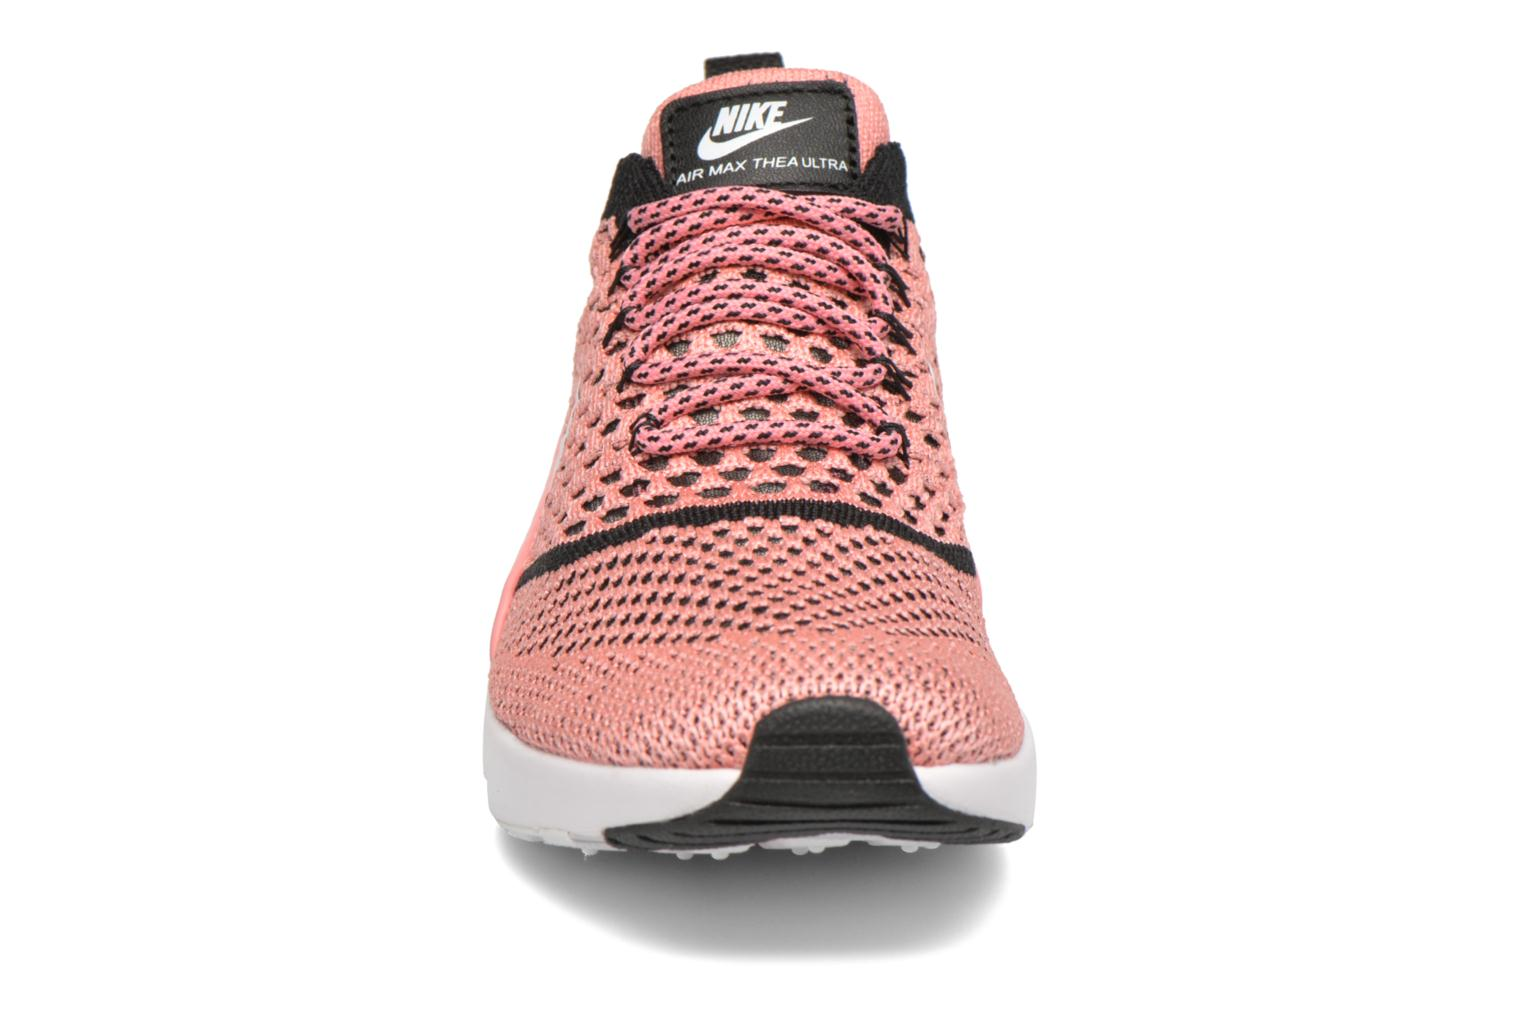 W Nike Air Max Thea Ultra Fk Bright Melon/White-Black